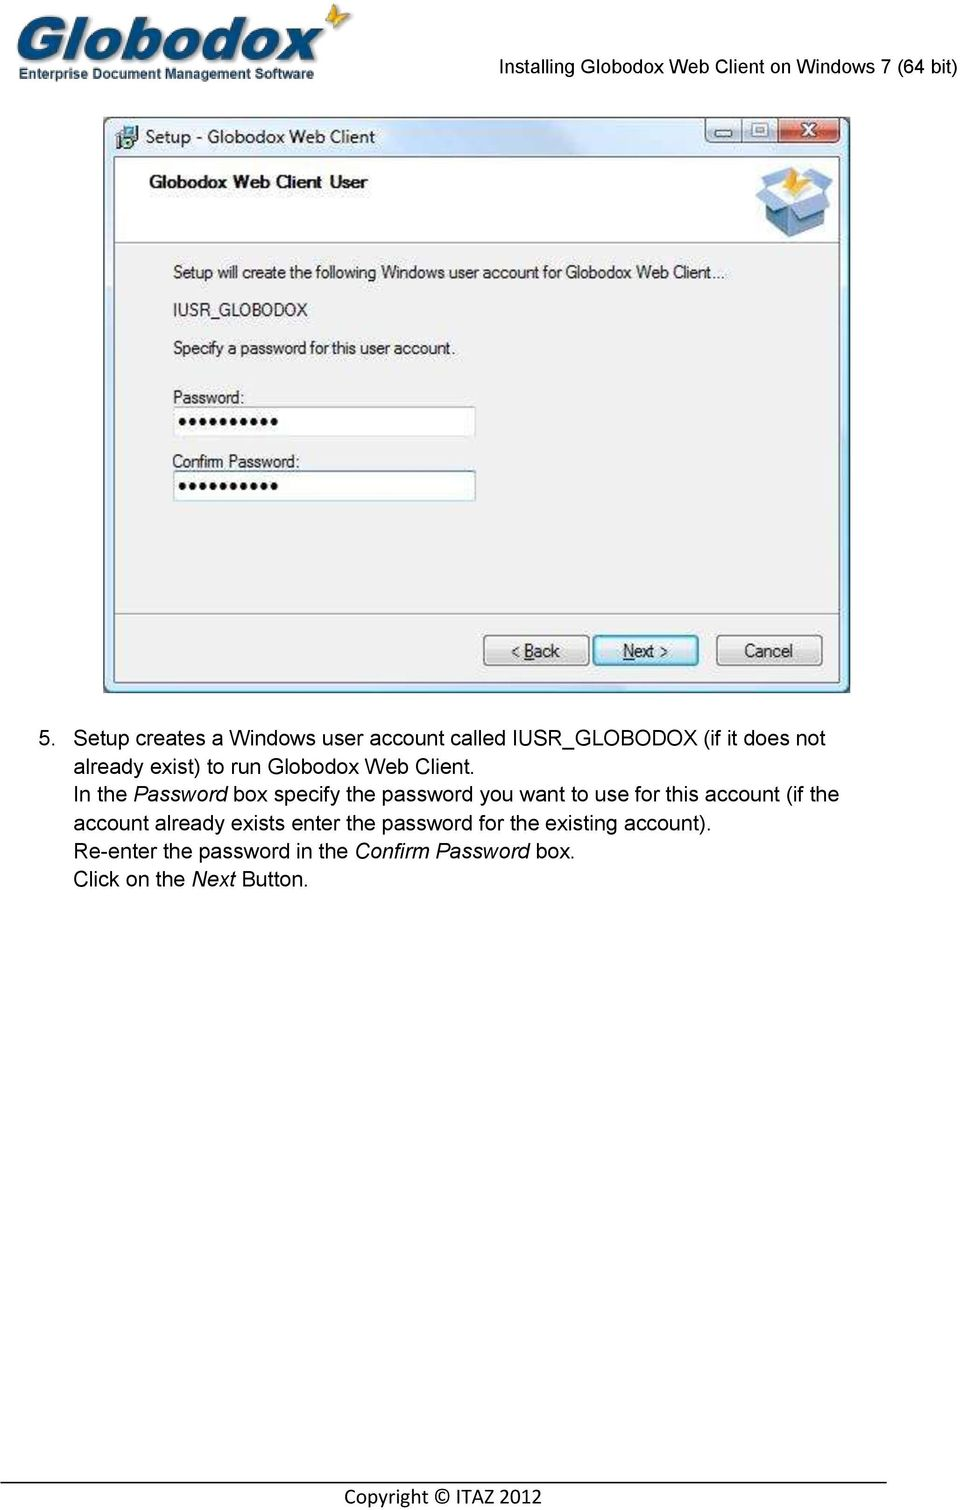 In the Password box specify the password you want to use for this account (if the